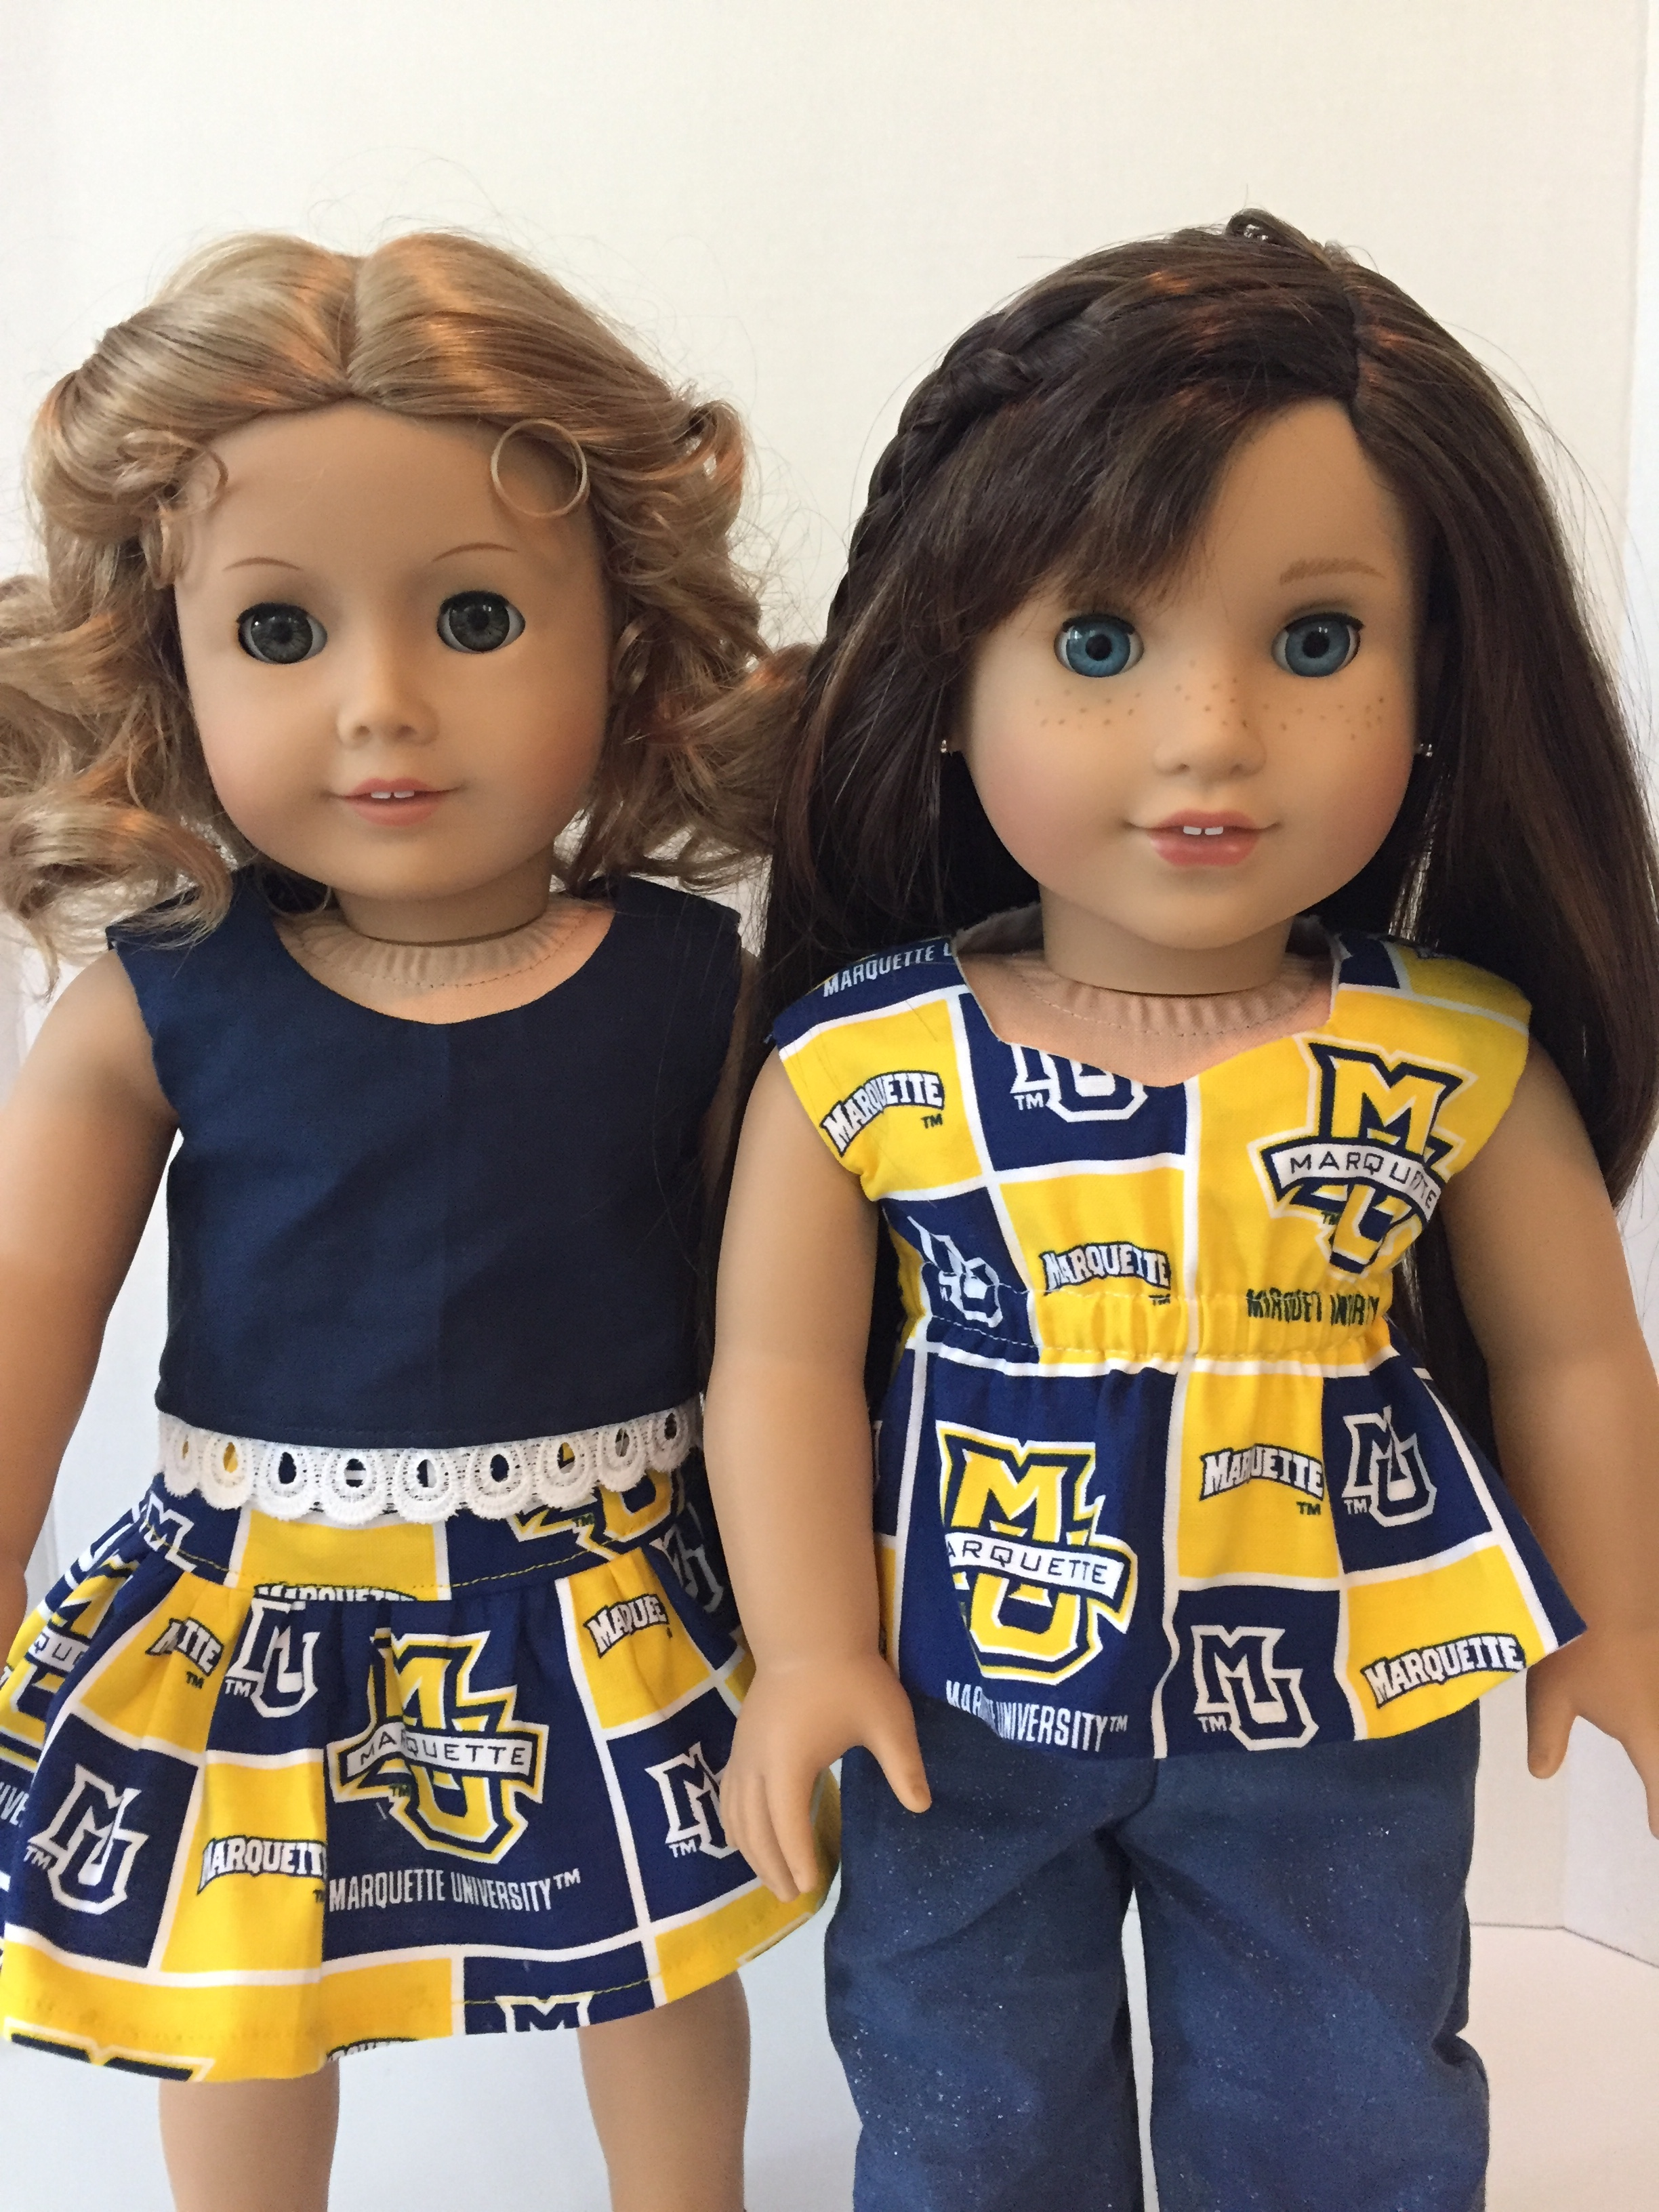 Marquette University spirit wear 18 inch doll clothes made with sewing patterns by Oh Sew Kat. Go Golden Eagles!